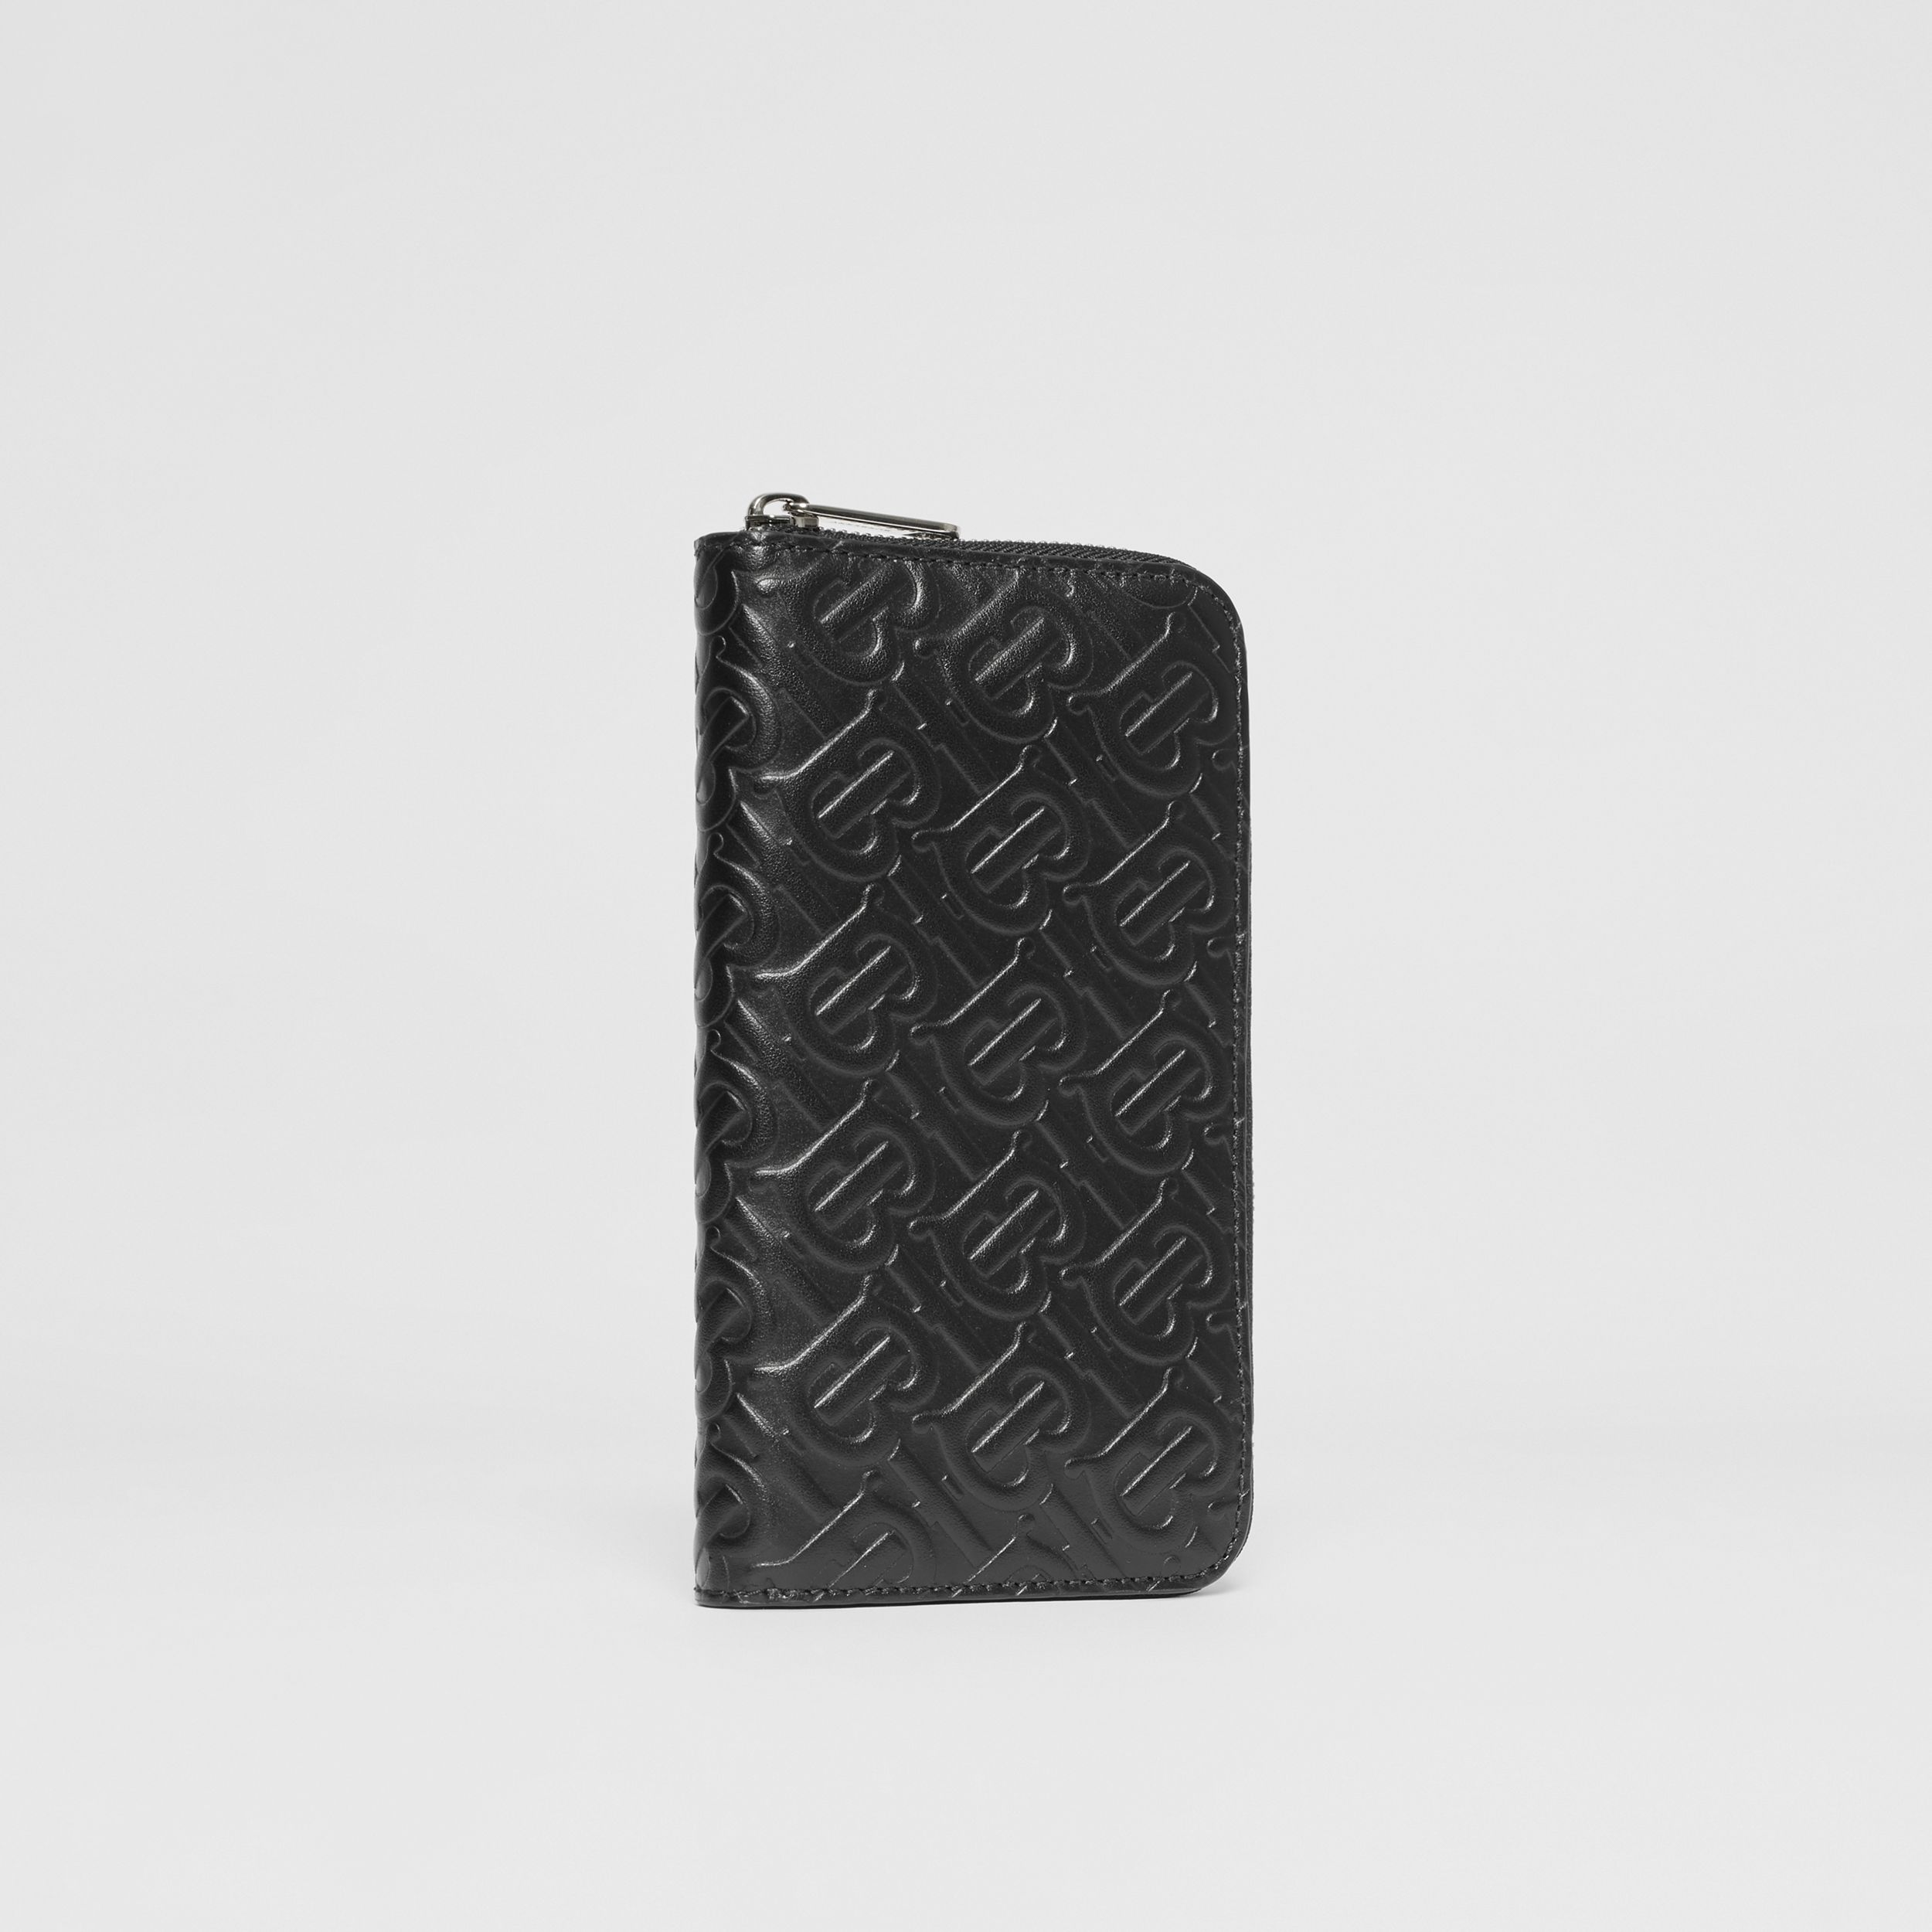 Monogram Leather Ziparound Wallet in Black - Men | Burberry Hong Kong S.A.R. - 4